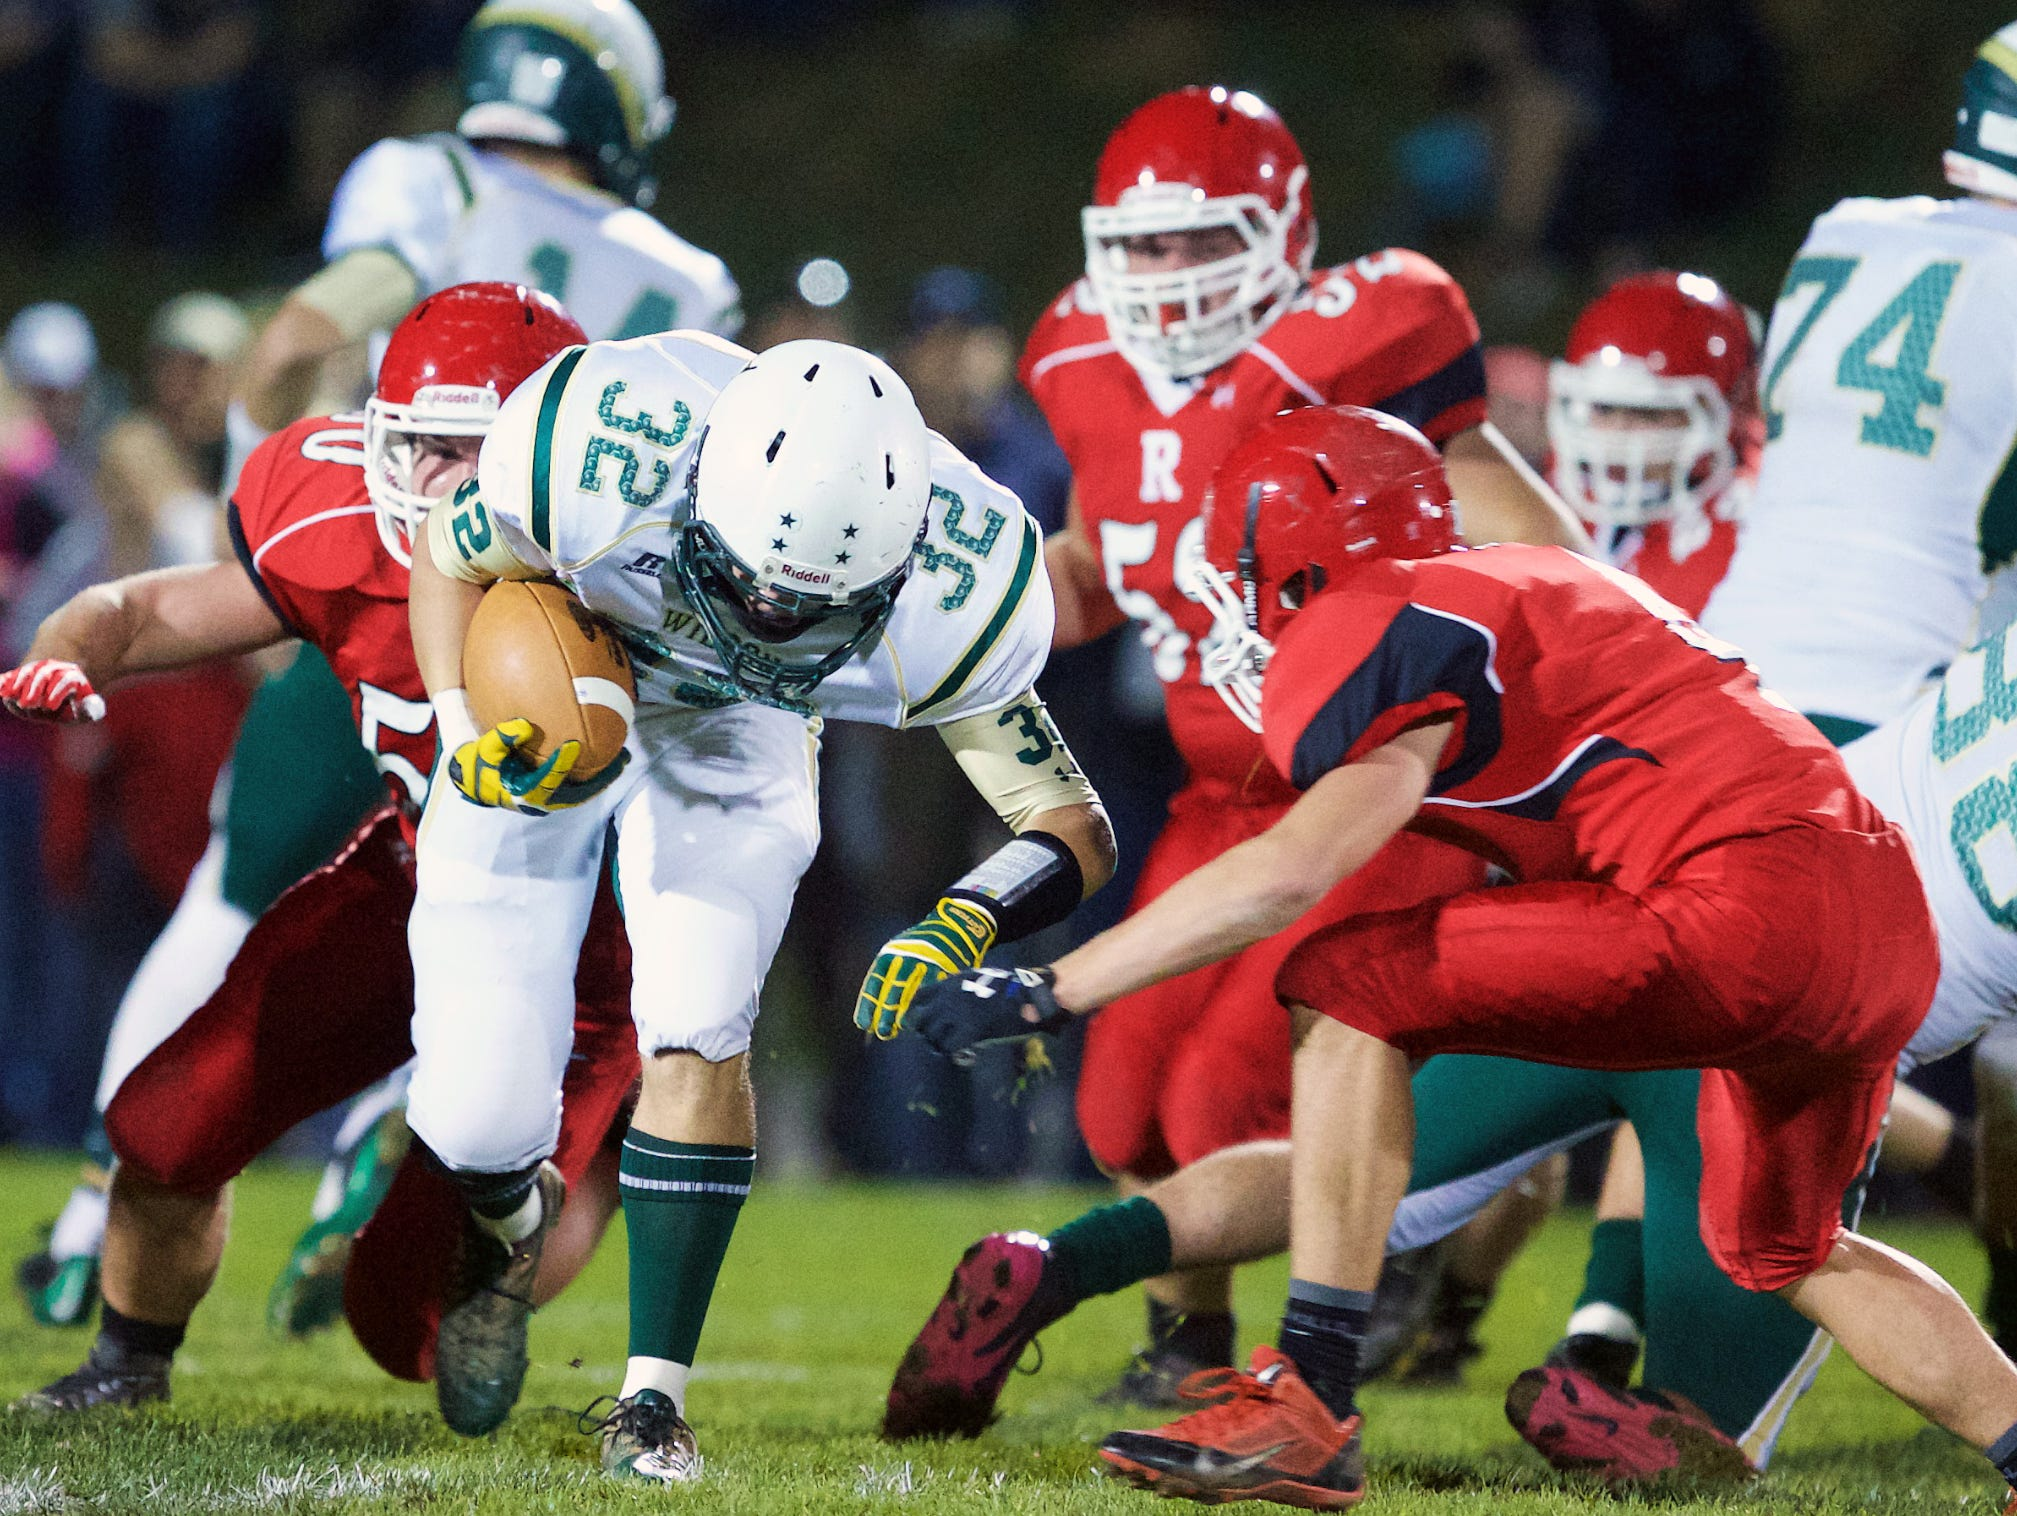 Wilson Memorial's Connor Chapman, left, gains yardage against Riverheads on Oct. 17, his first game back since suffering a knee injury in the second week of the season.